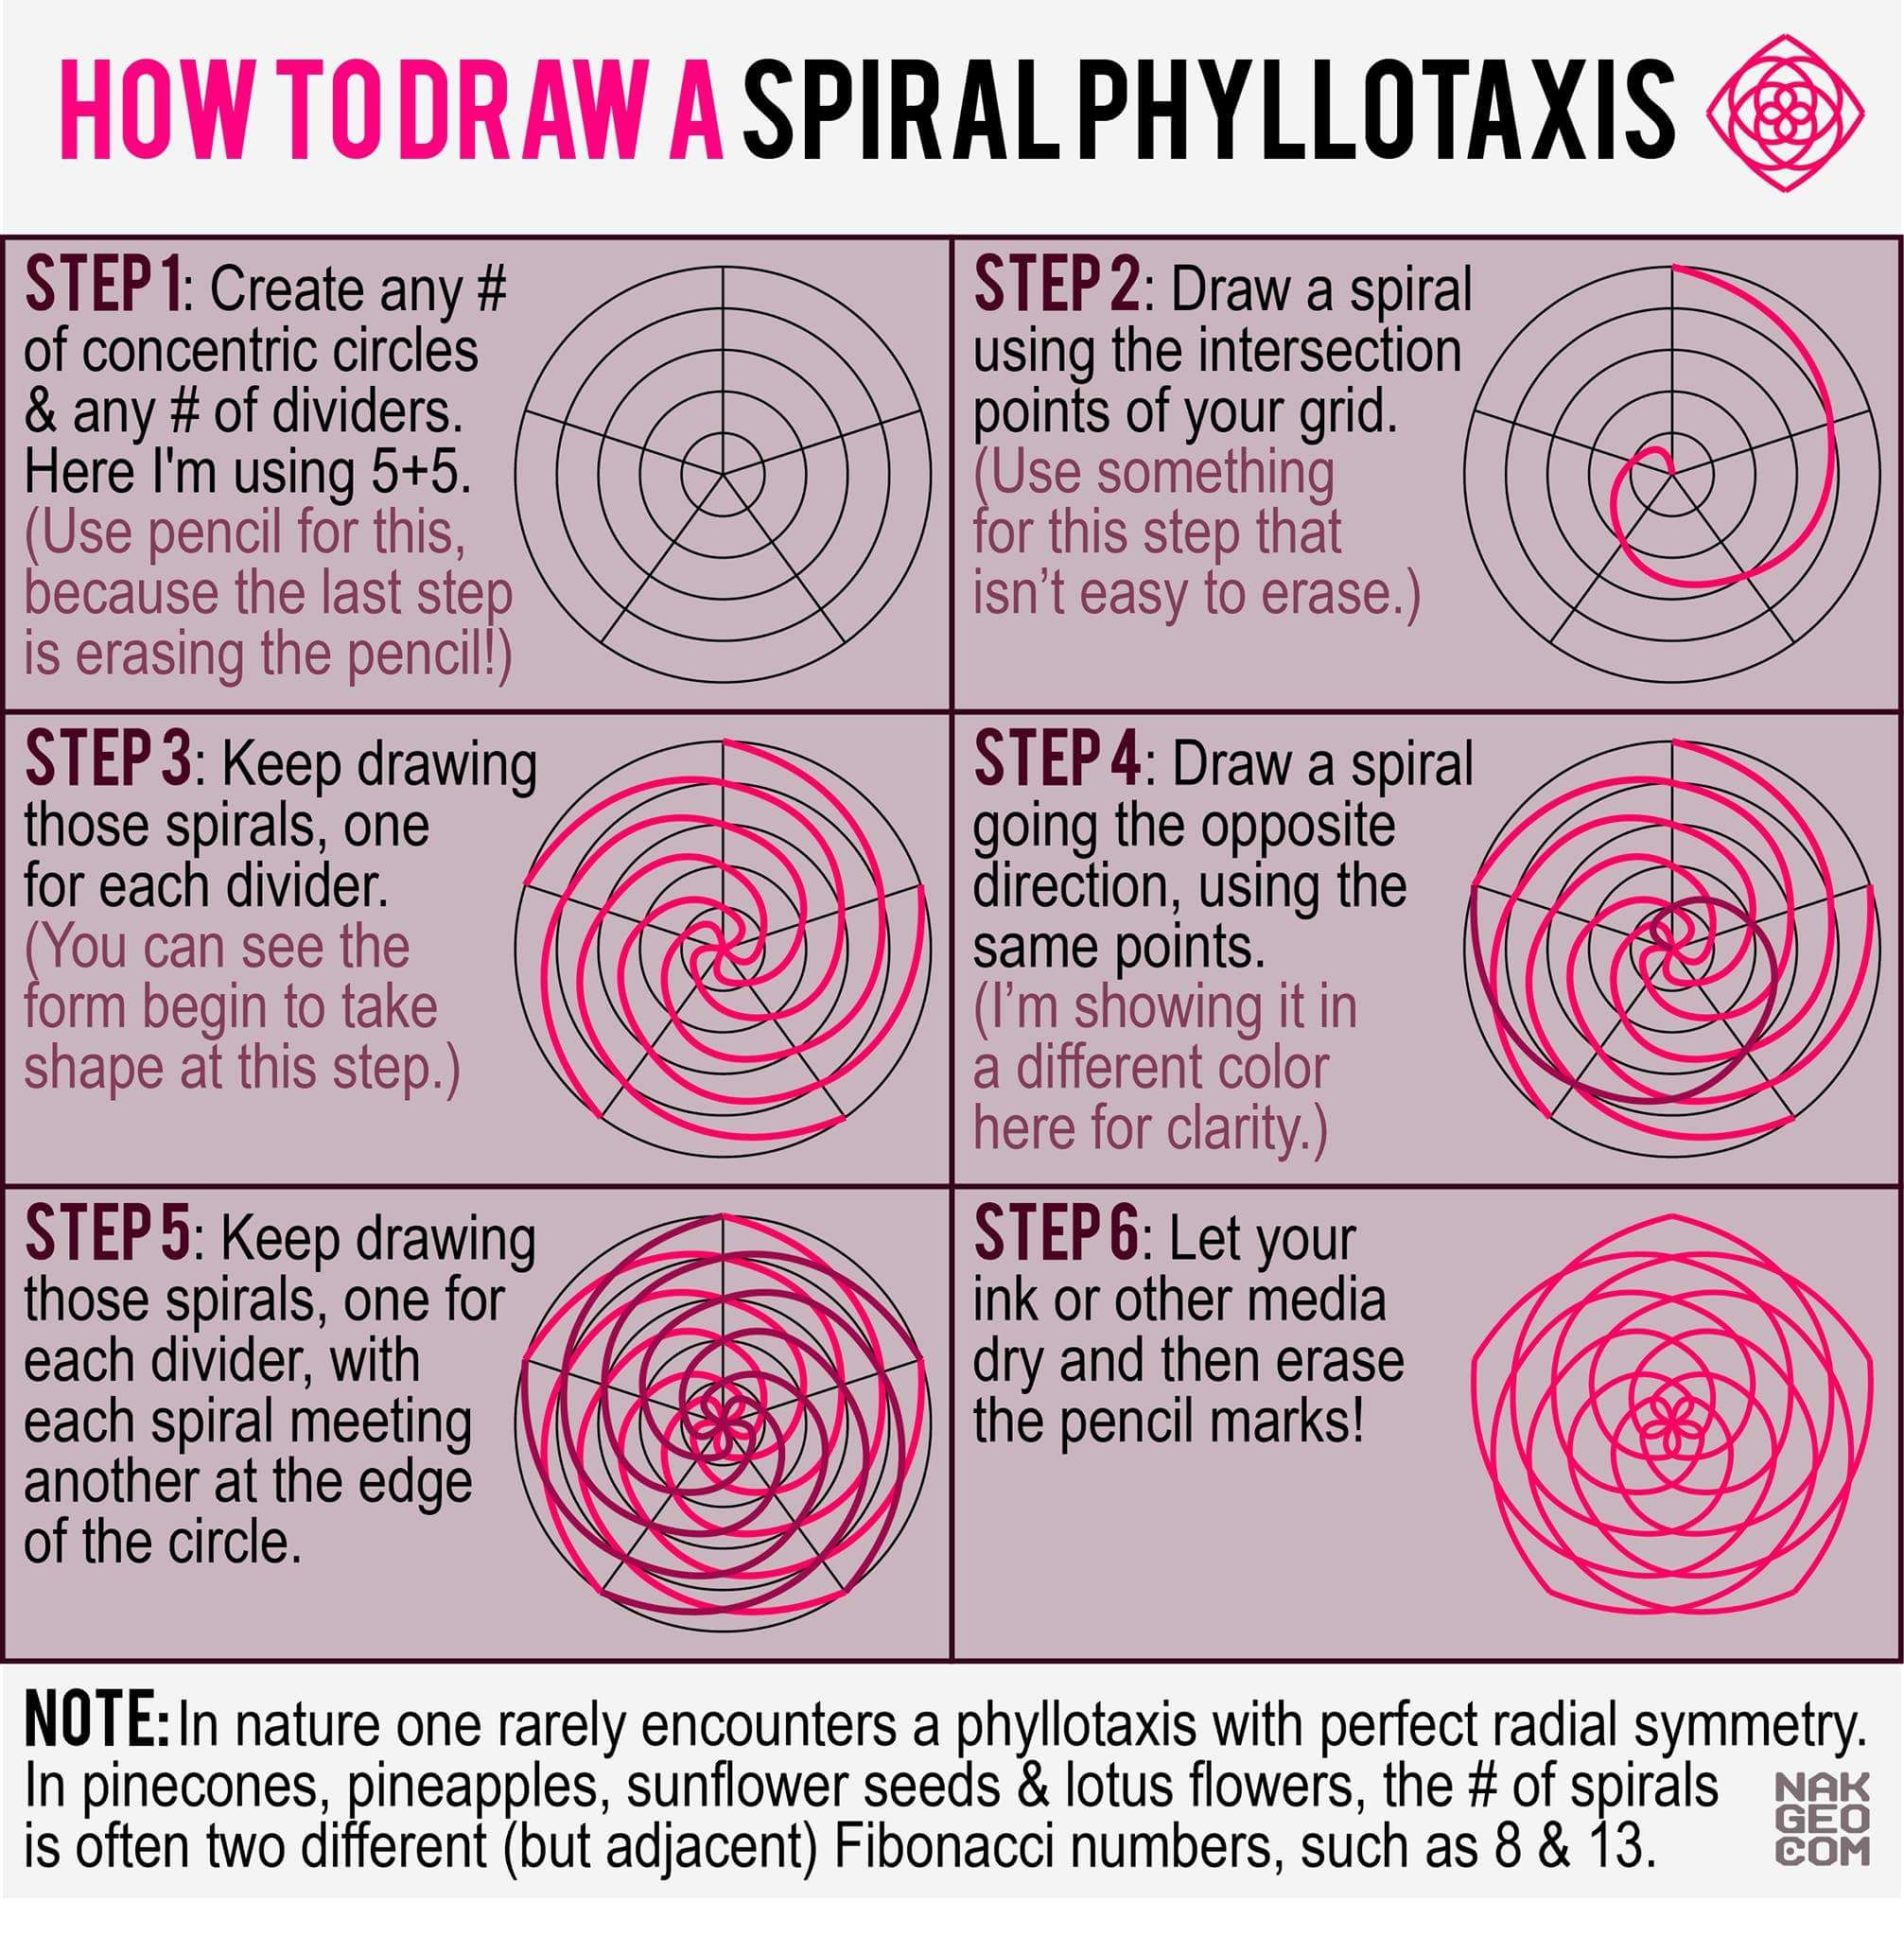 How To Draw A Spiral Phyllotaxis